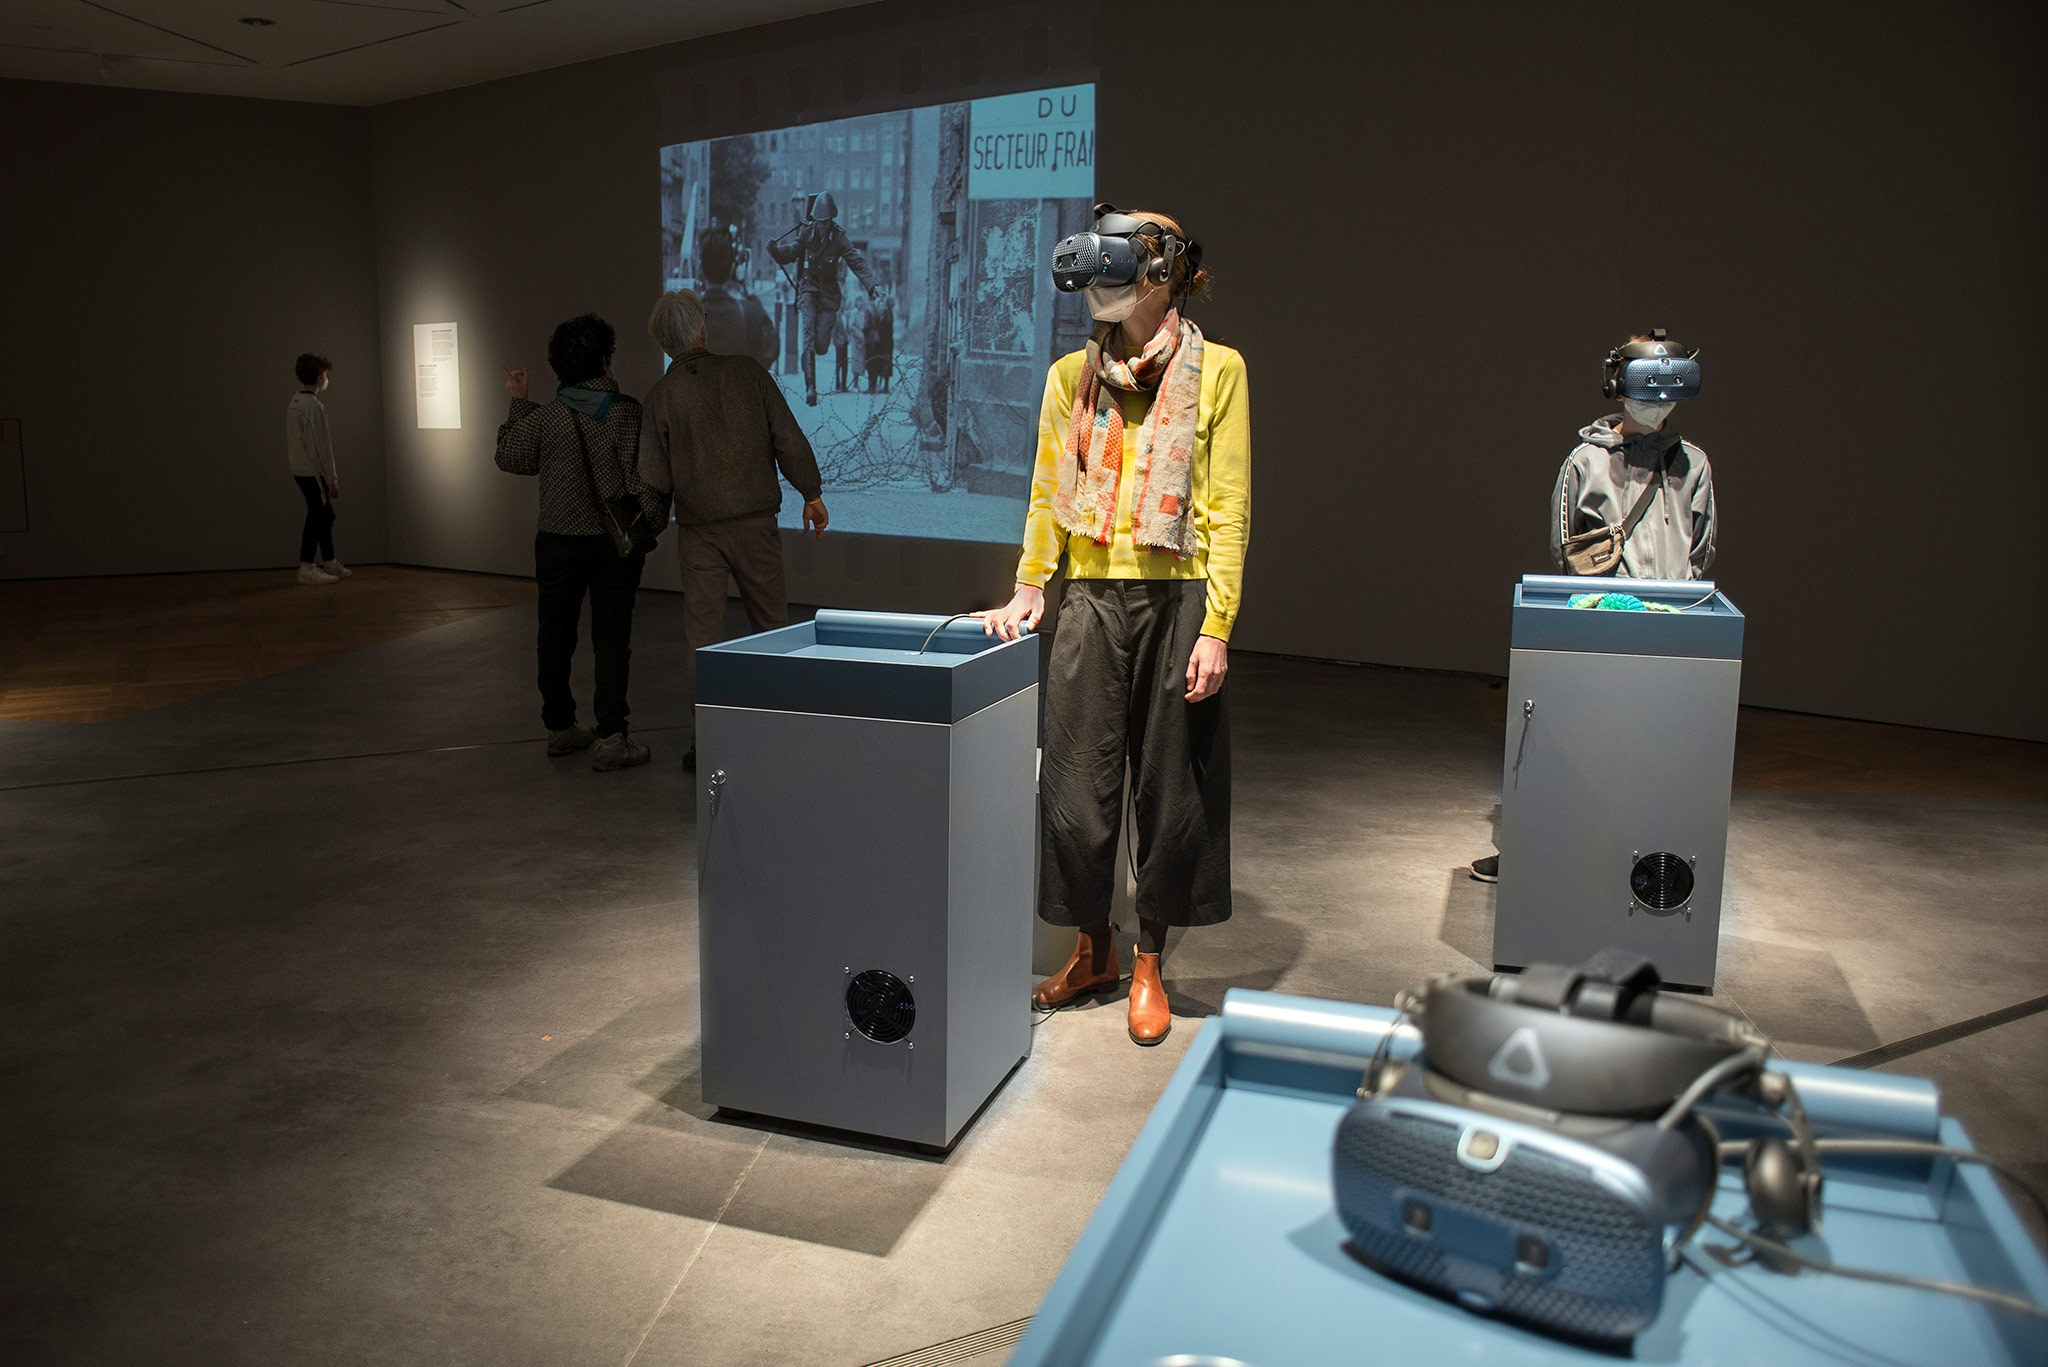 The Leap - Visitors with VR Headset, Projection